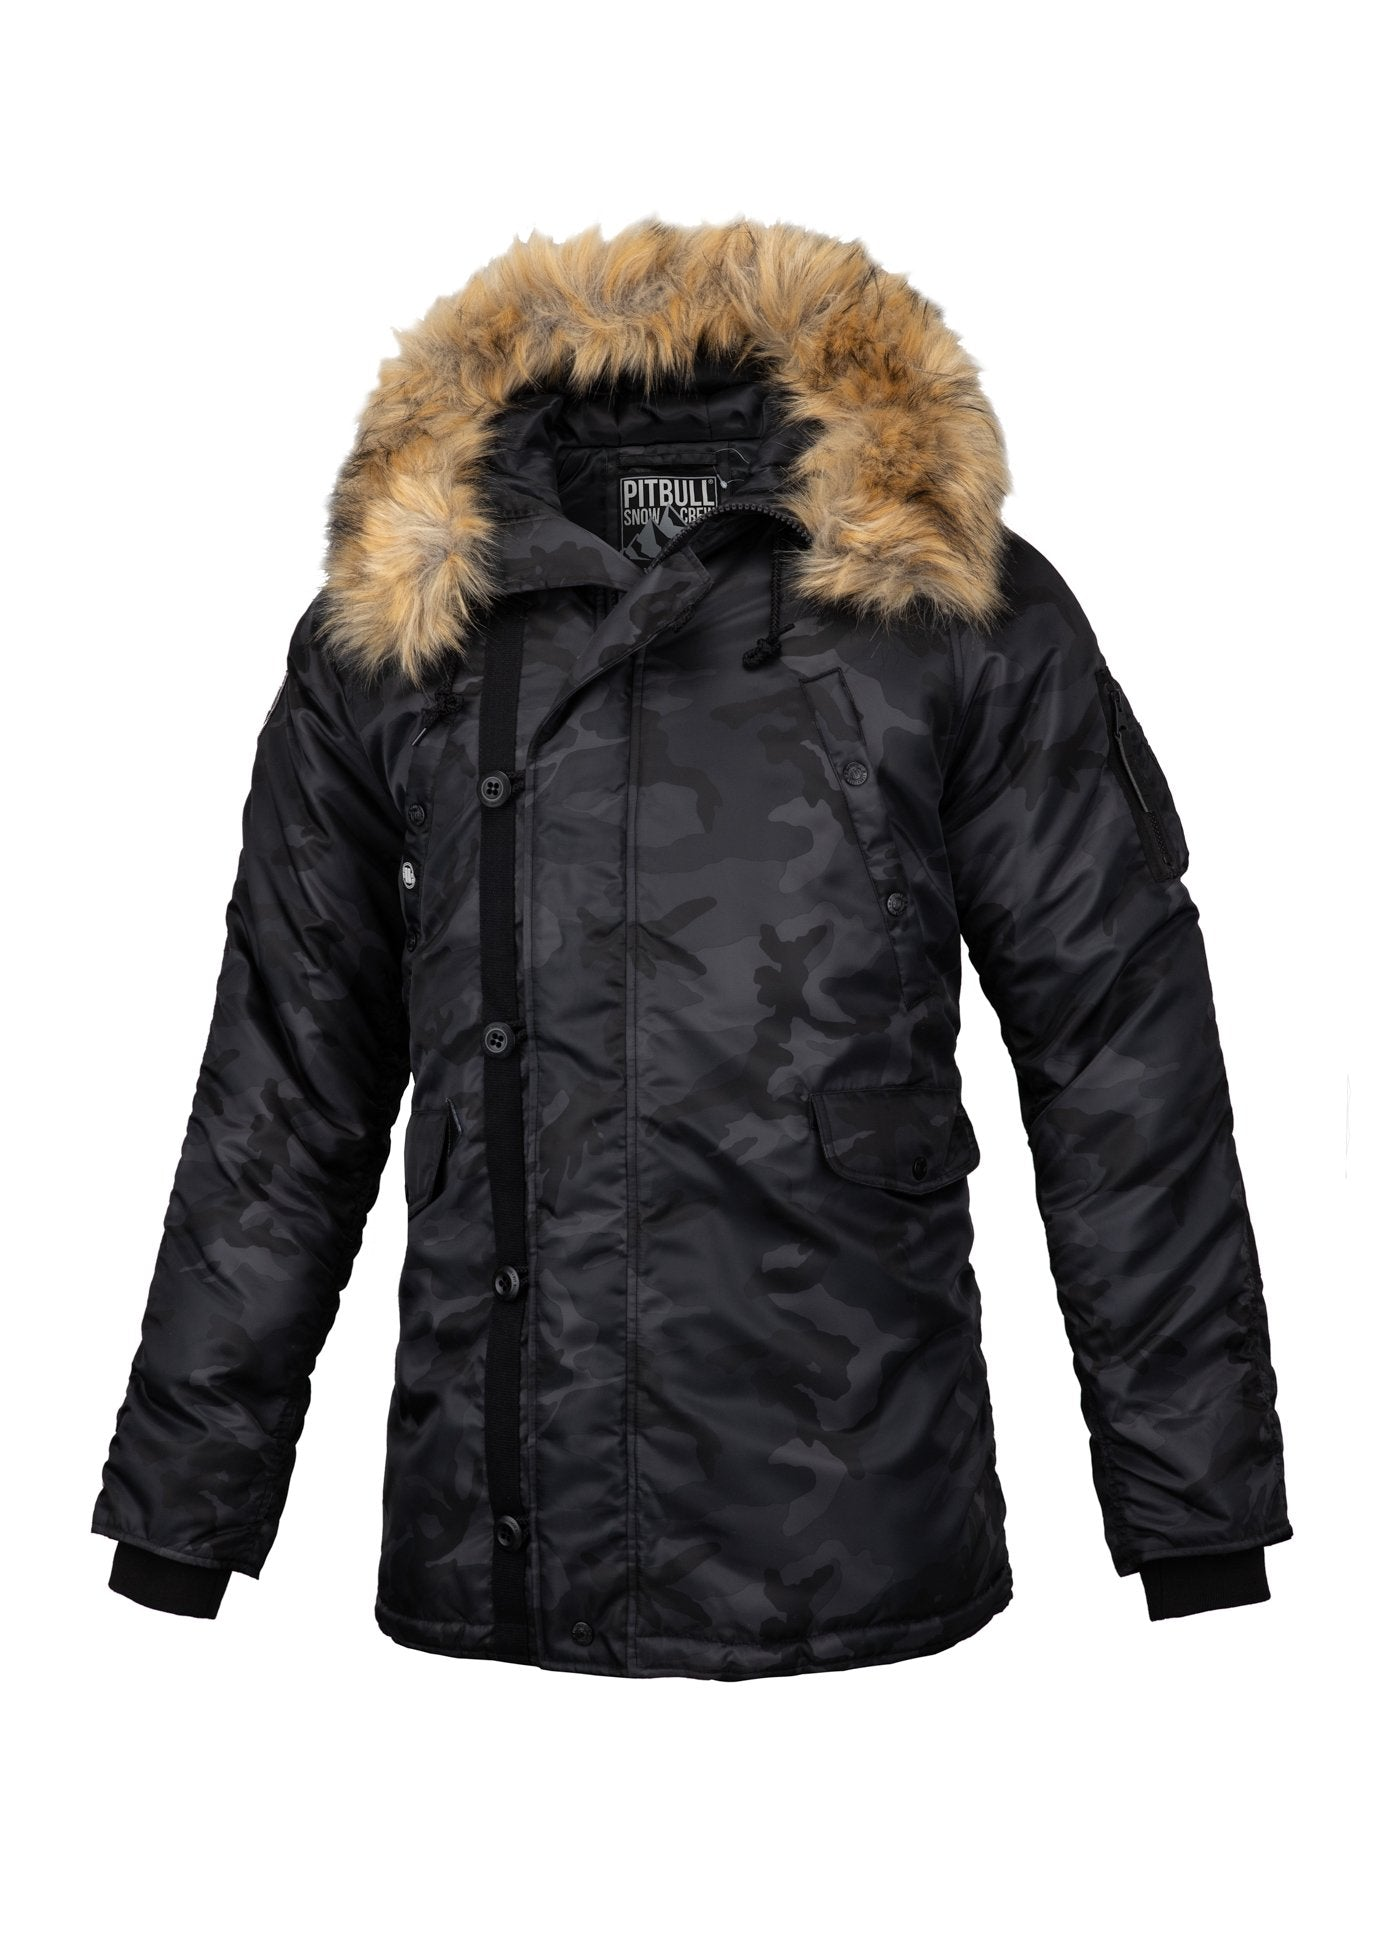 JACKET ALDER BLACK CAMO - pitbullwestcoast